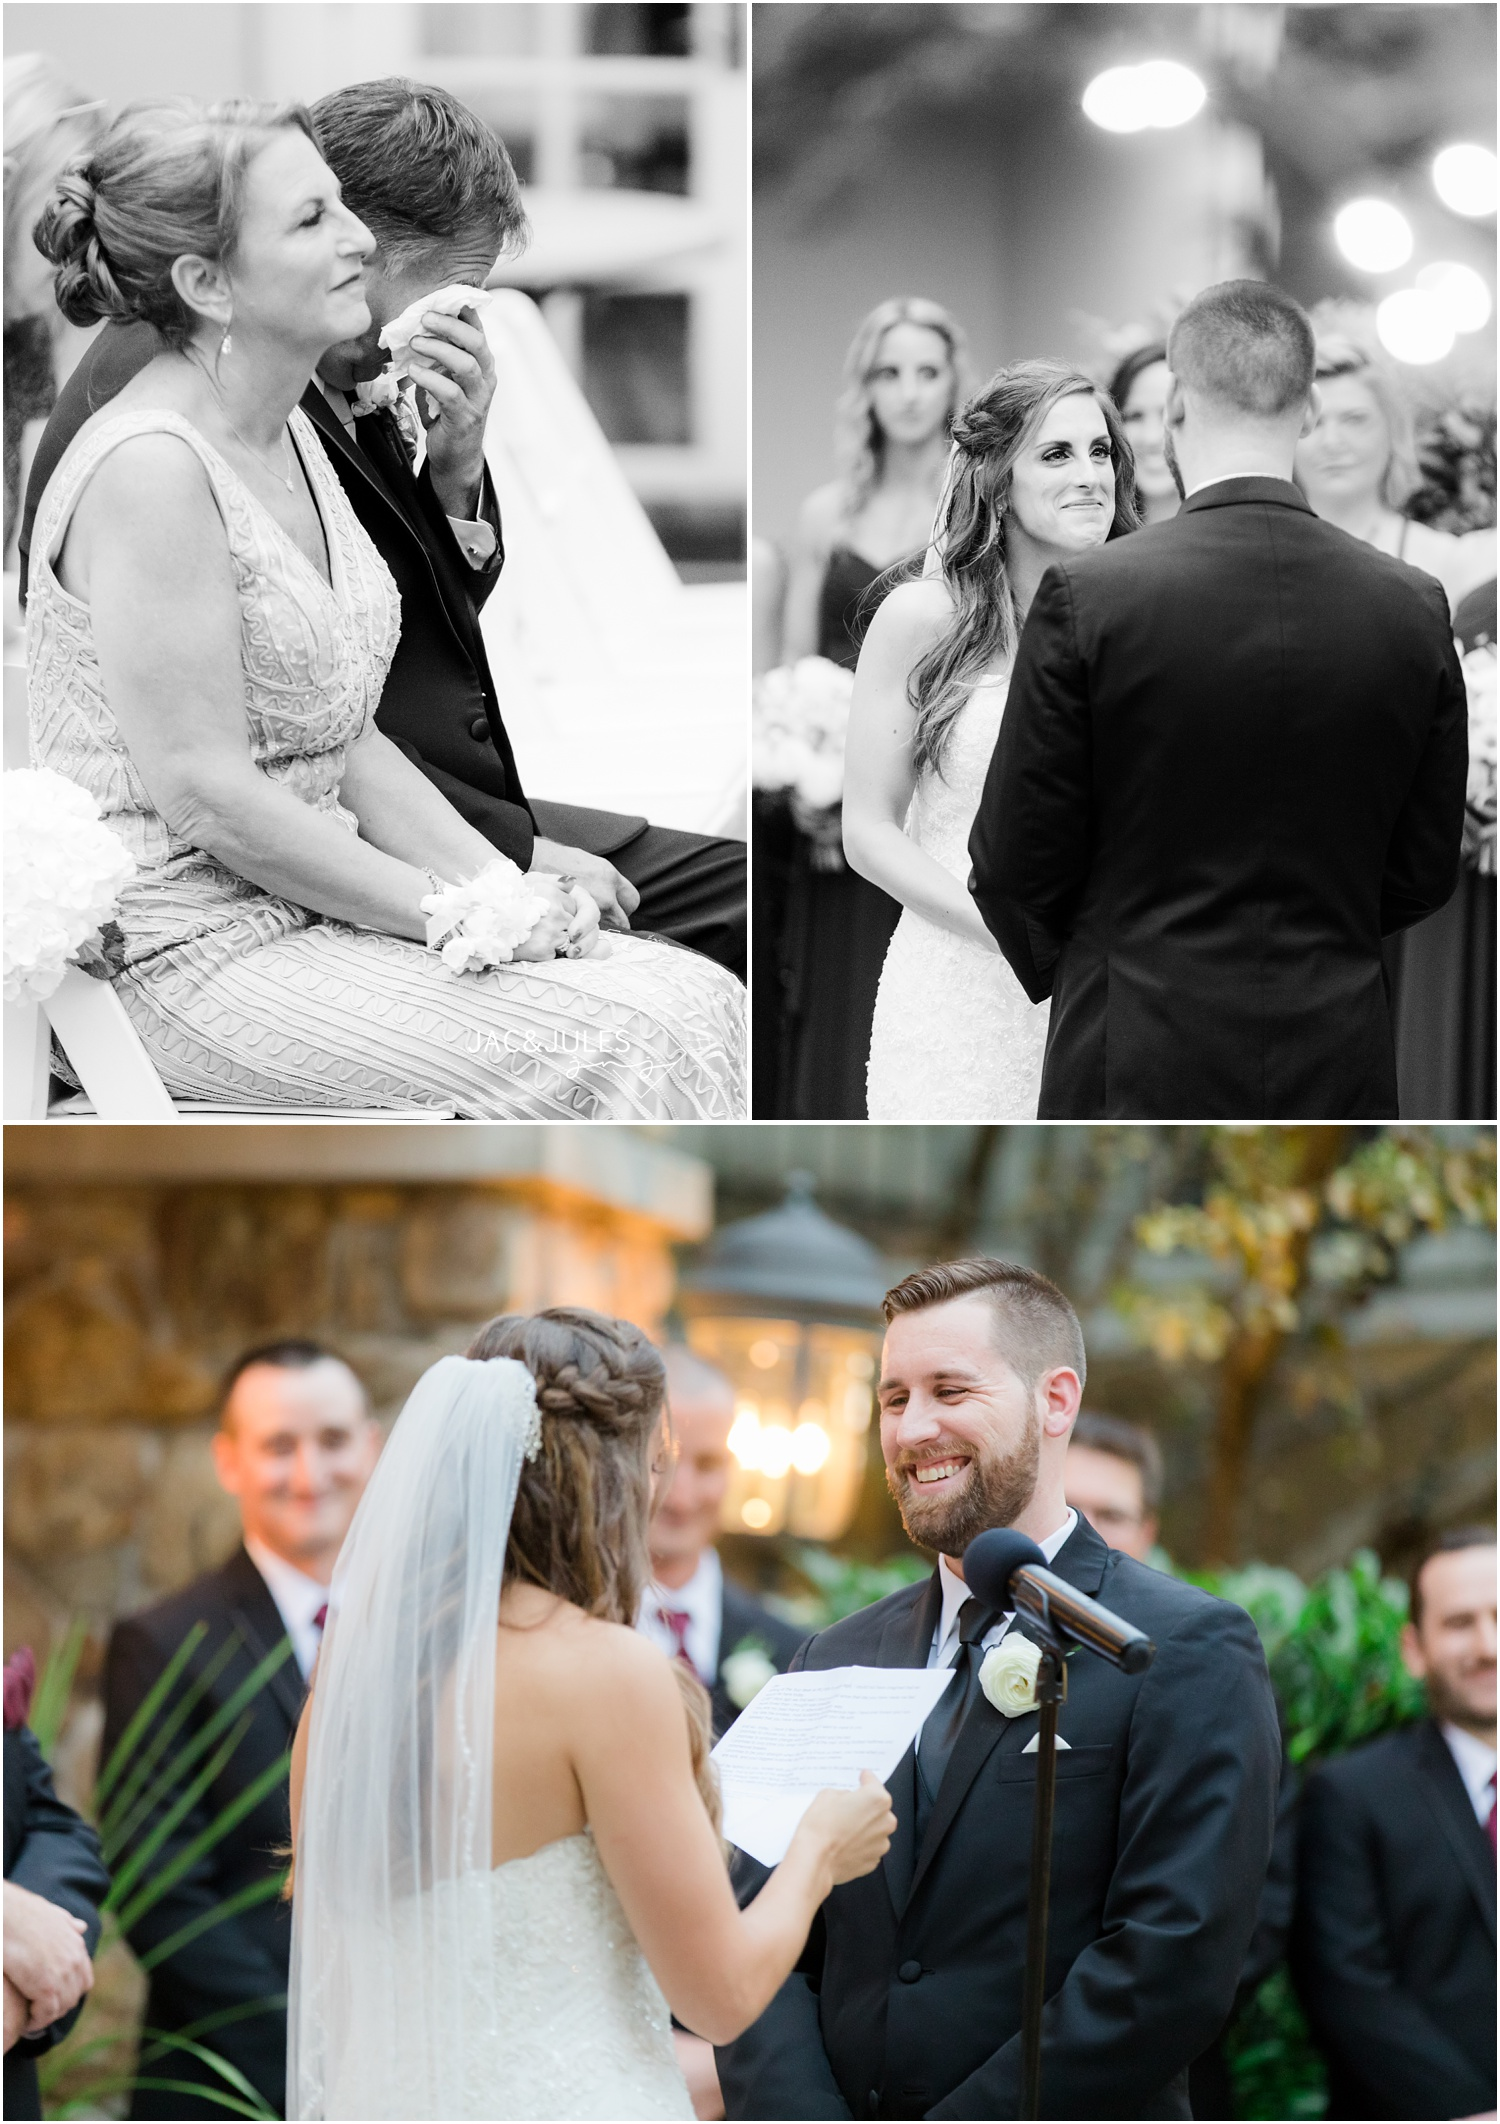 Wedding ceremony vows at The Olde Mill Inn in Basking Ridge, NJ.